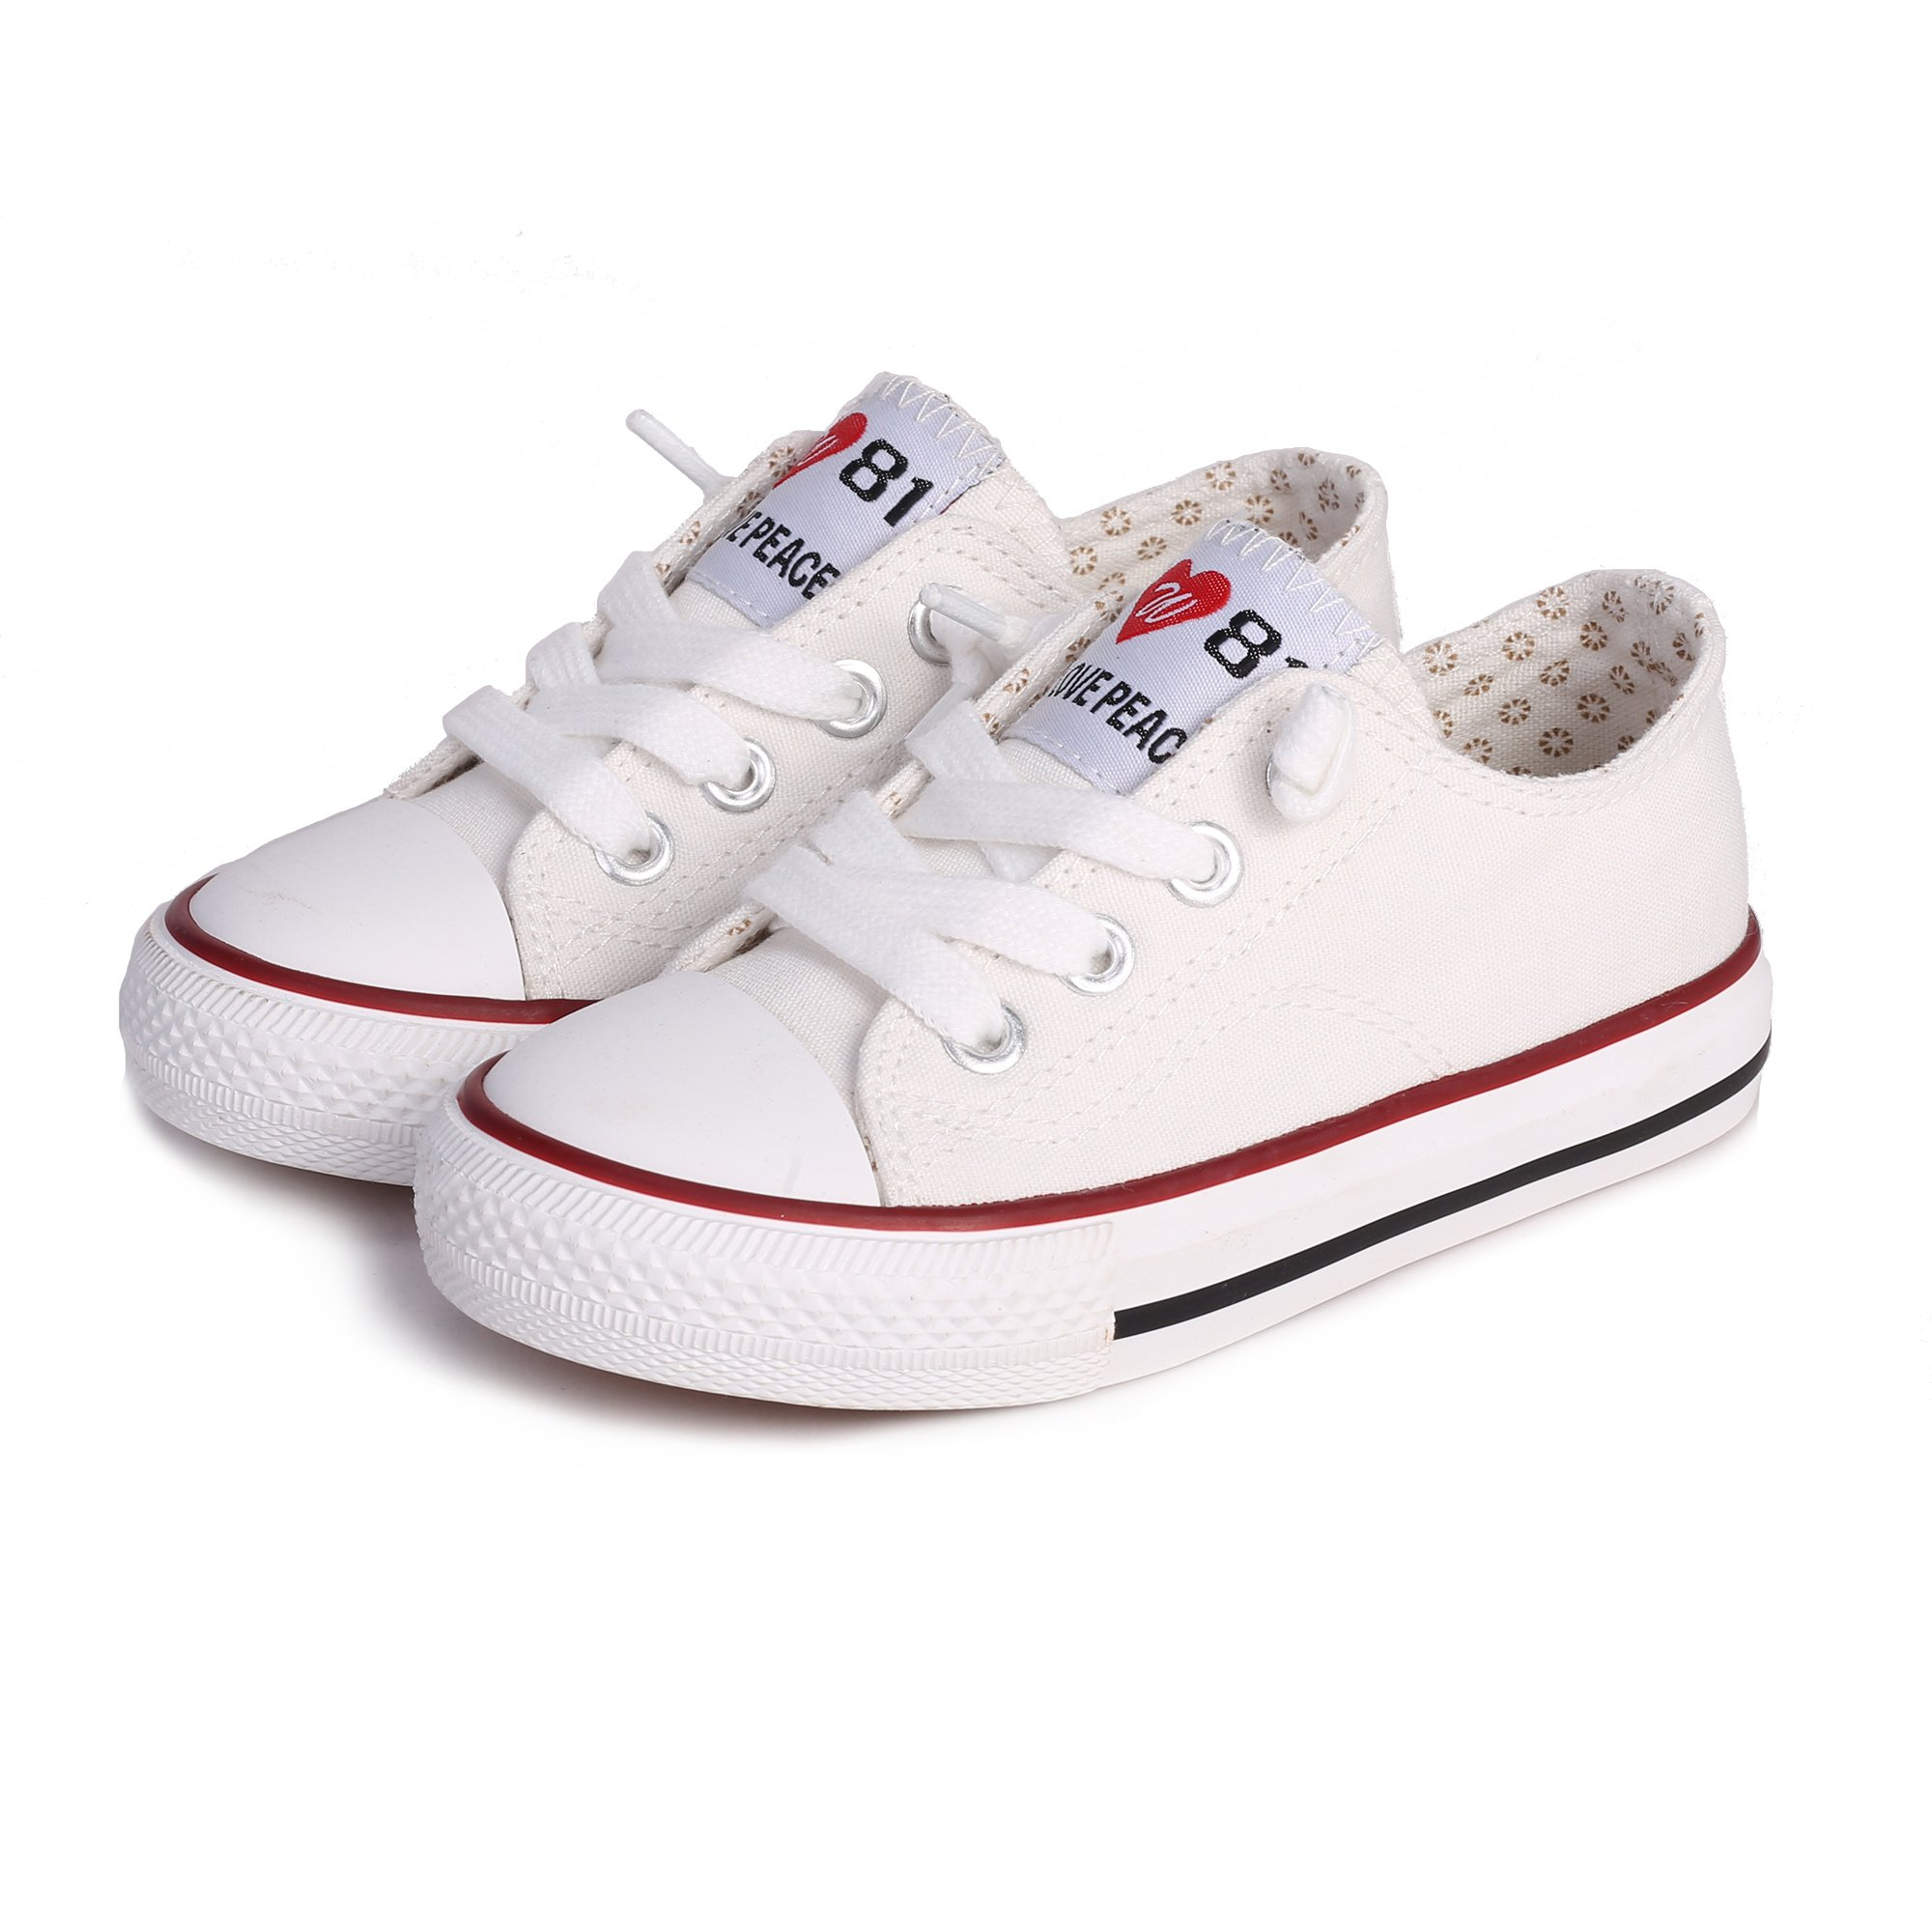 Weestep Canvas Sneaker (10, White)